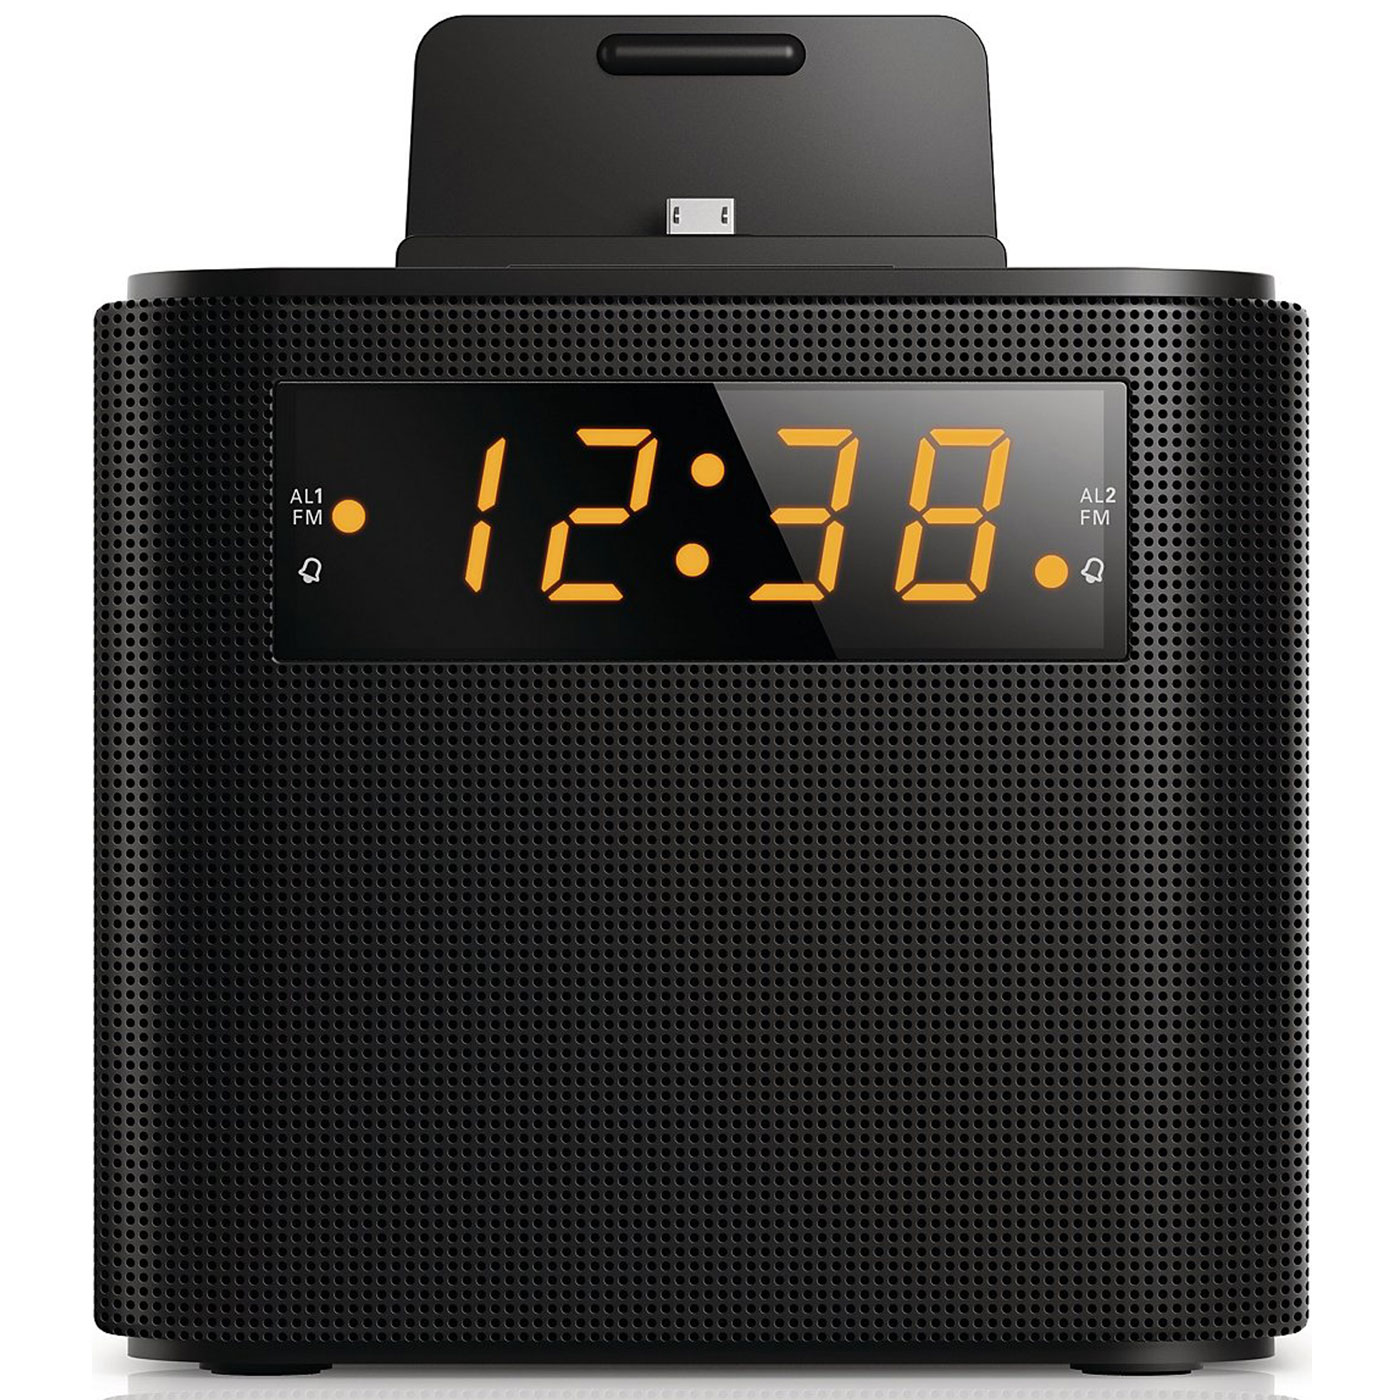 philips aj3200 12 radio radio r veil philips sur ldlc. Black Bedroom Furniture Sets. Home Design Ideas